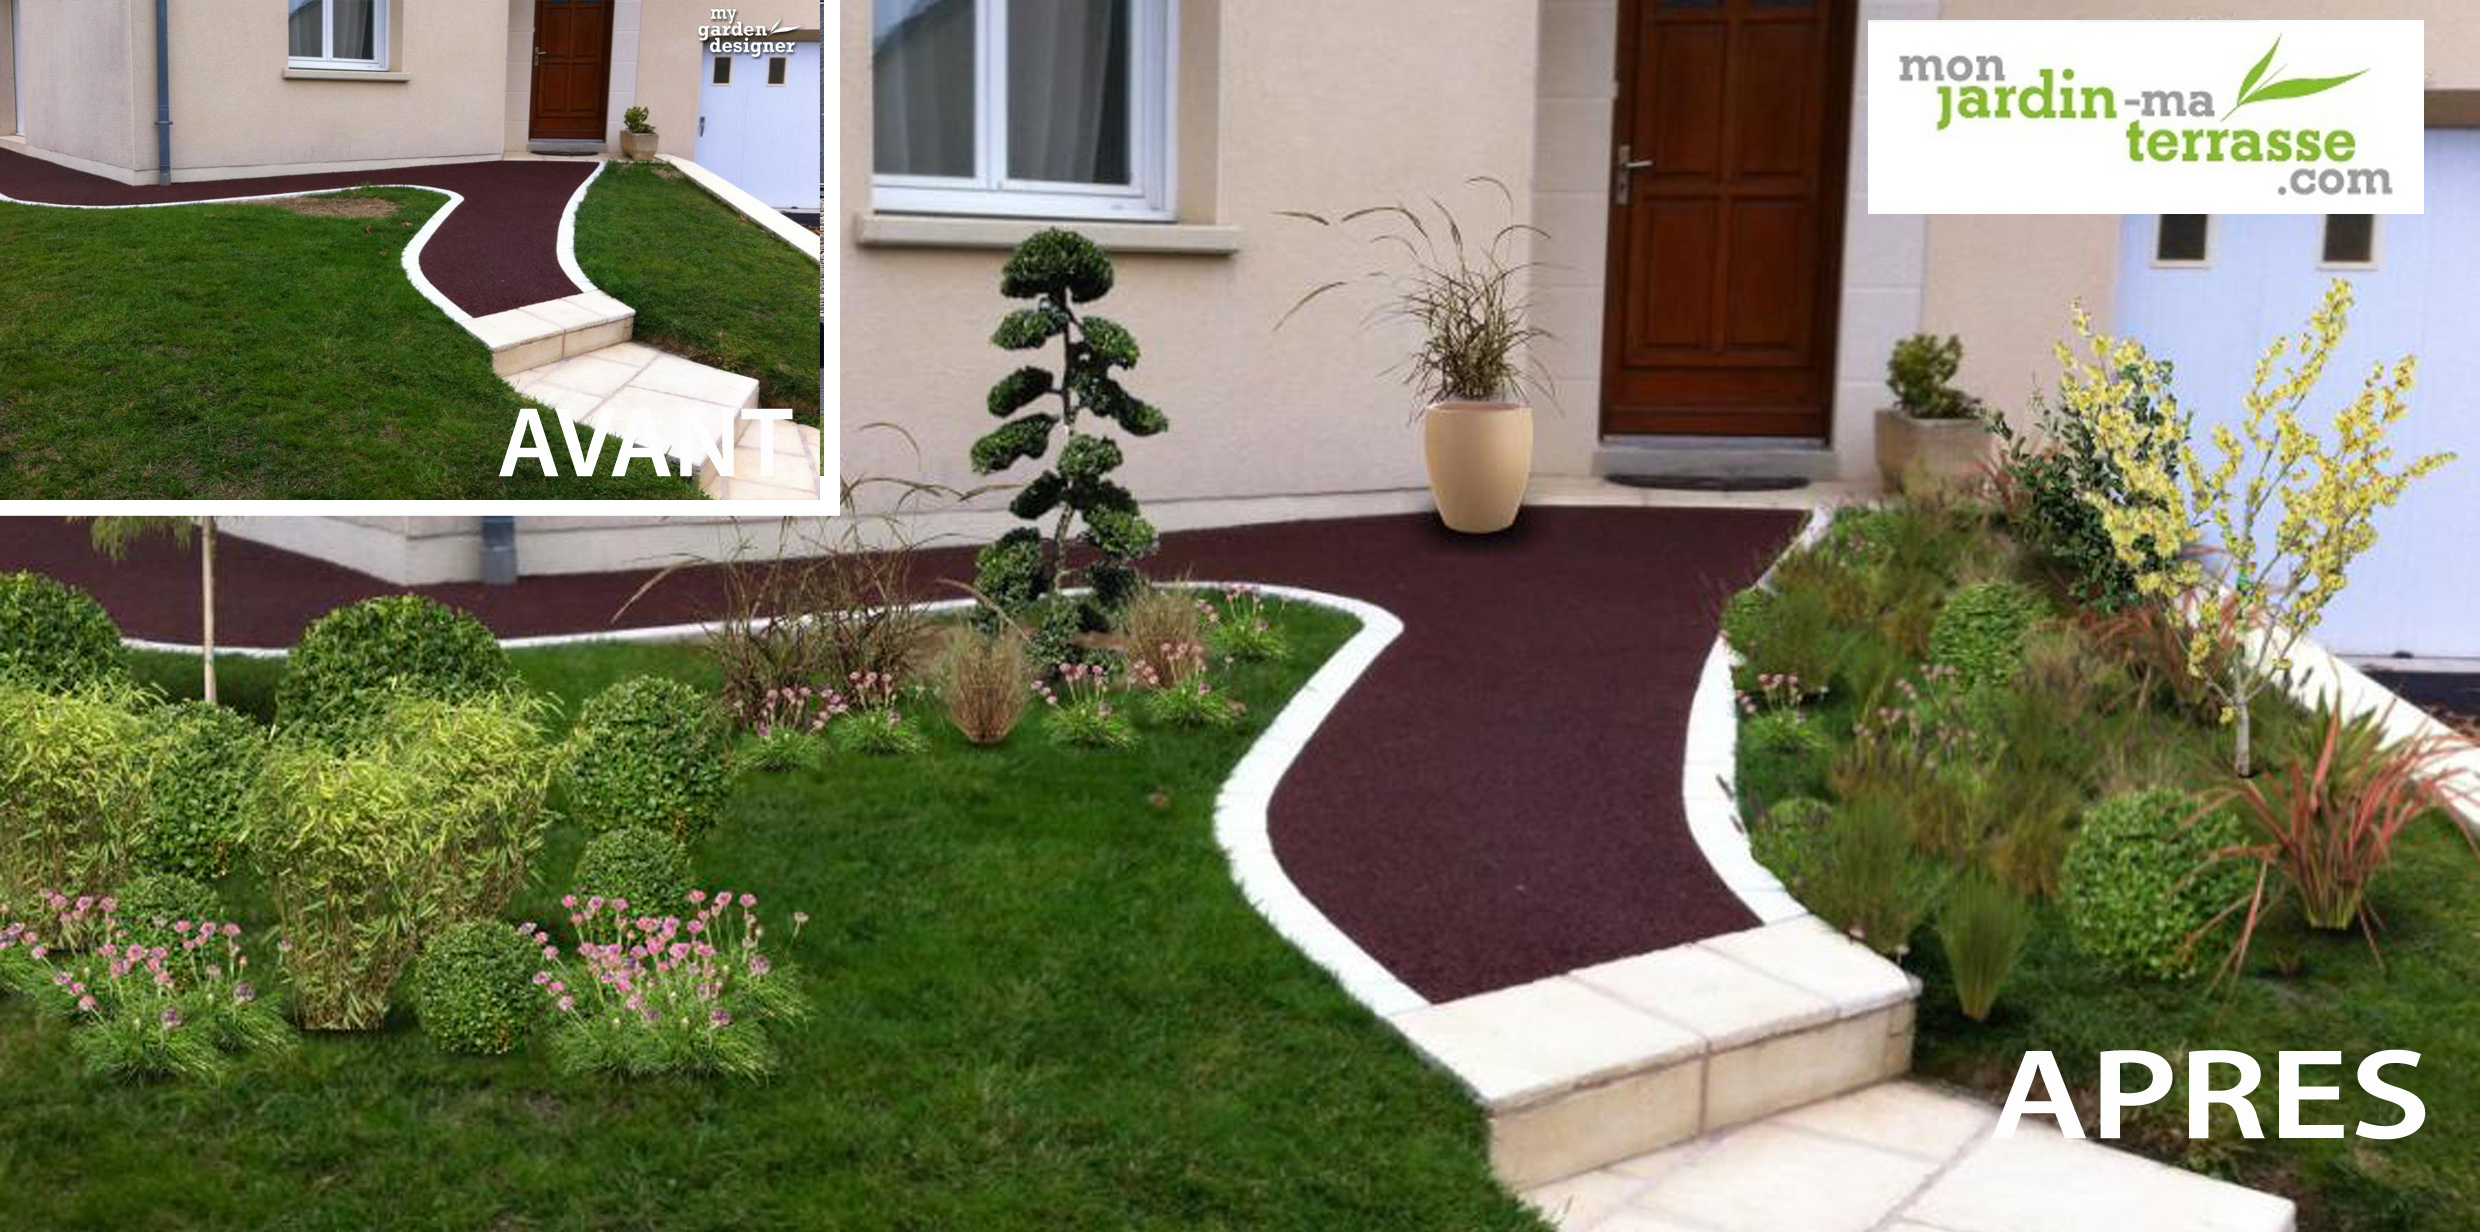 Logiciel d am nagement ext rieur de maison monjardin for Application amenagement jardin